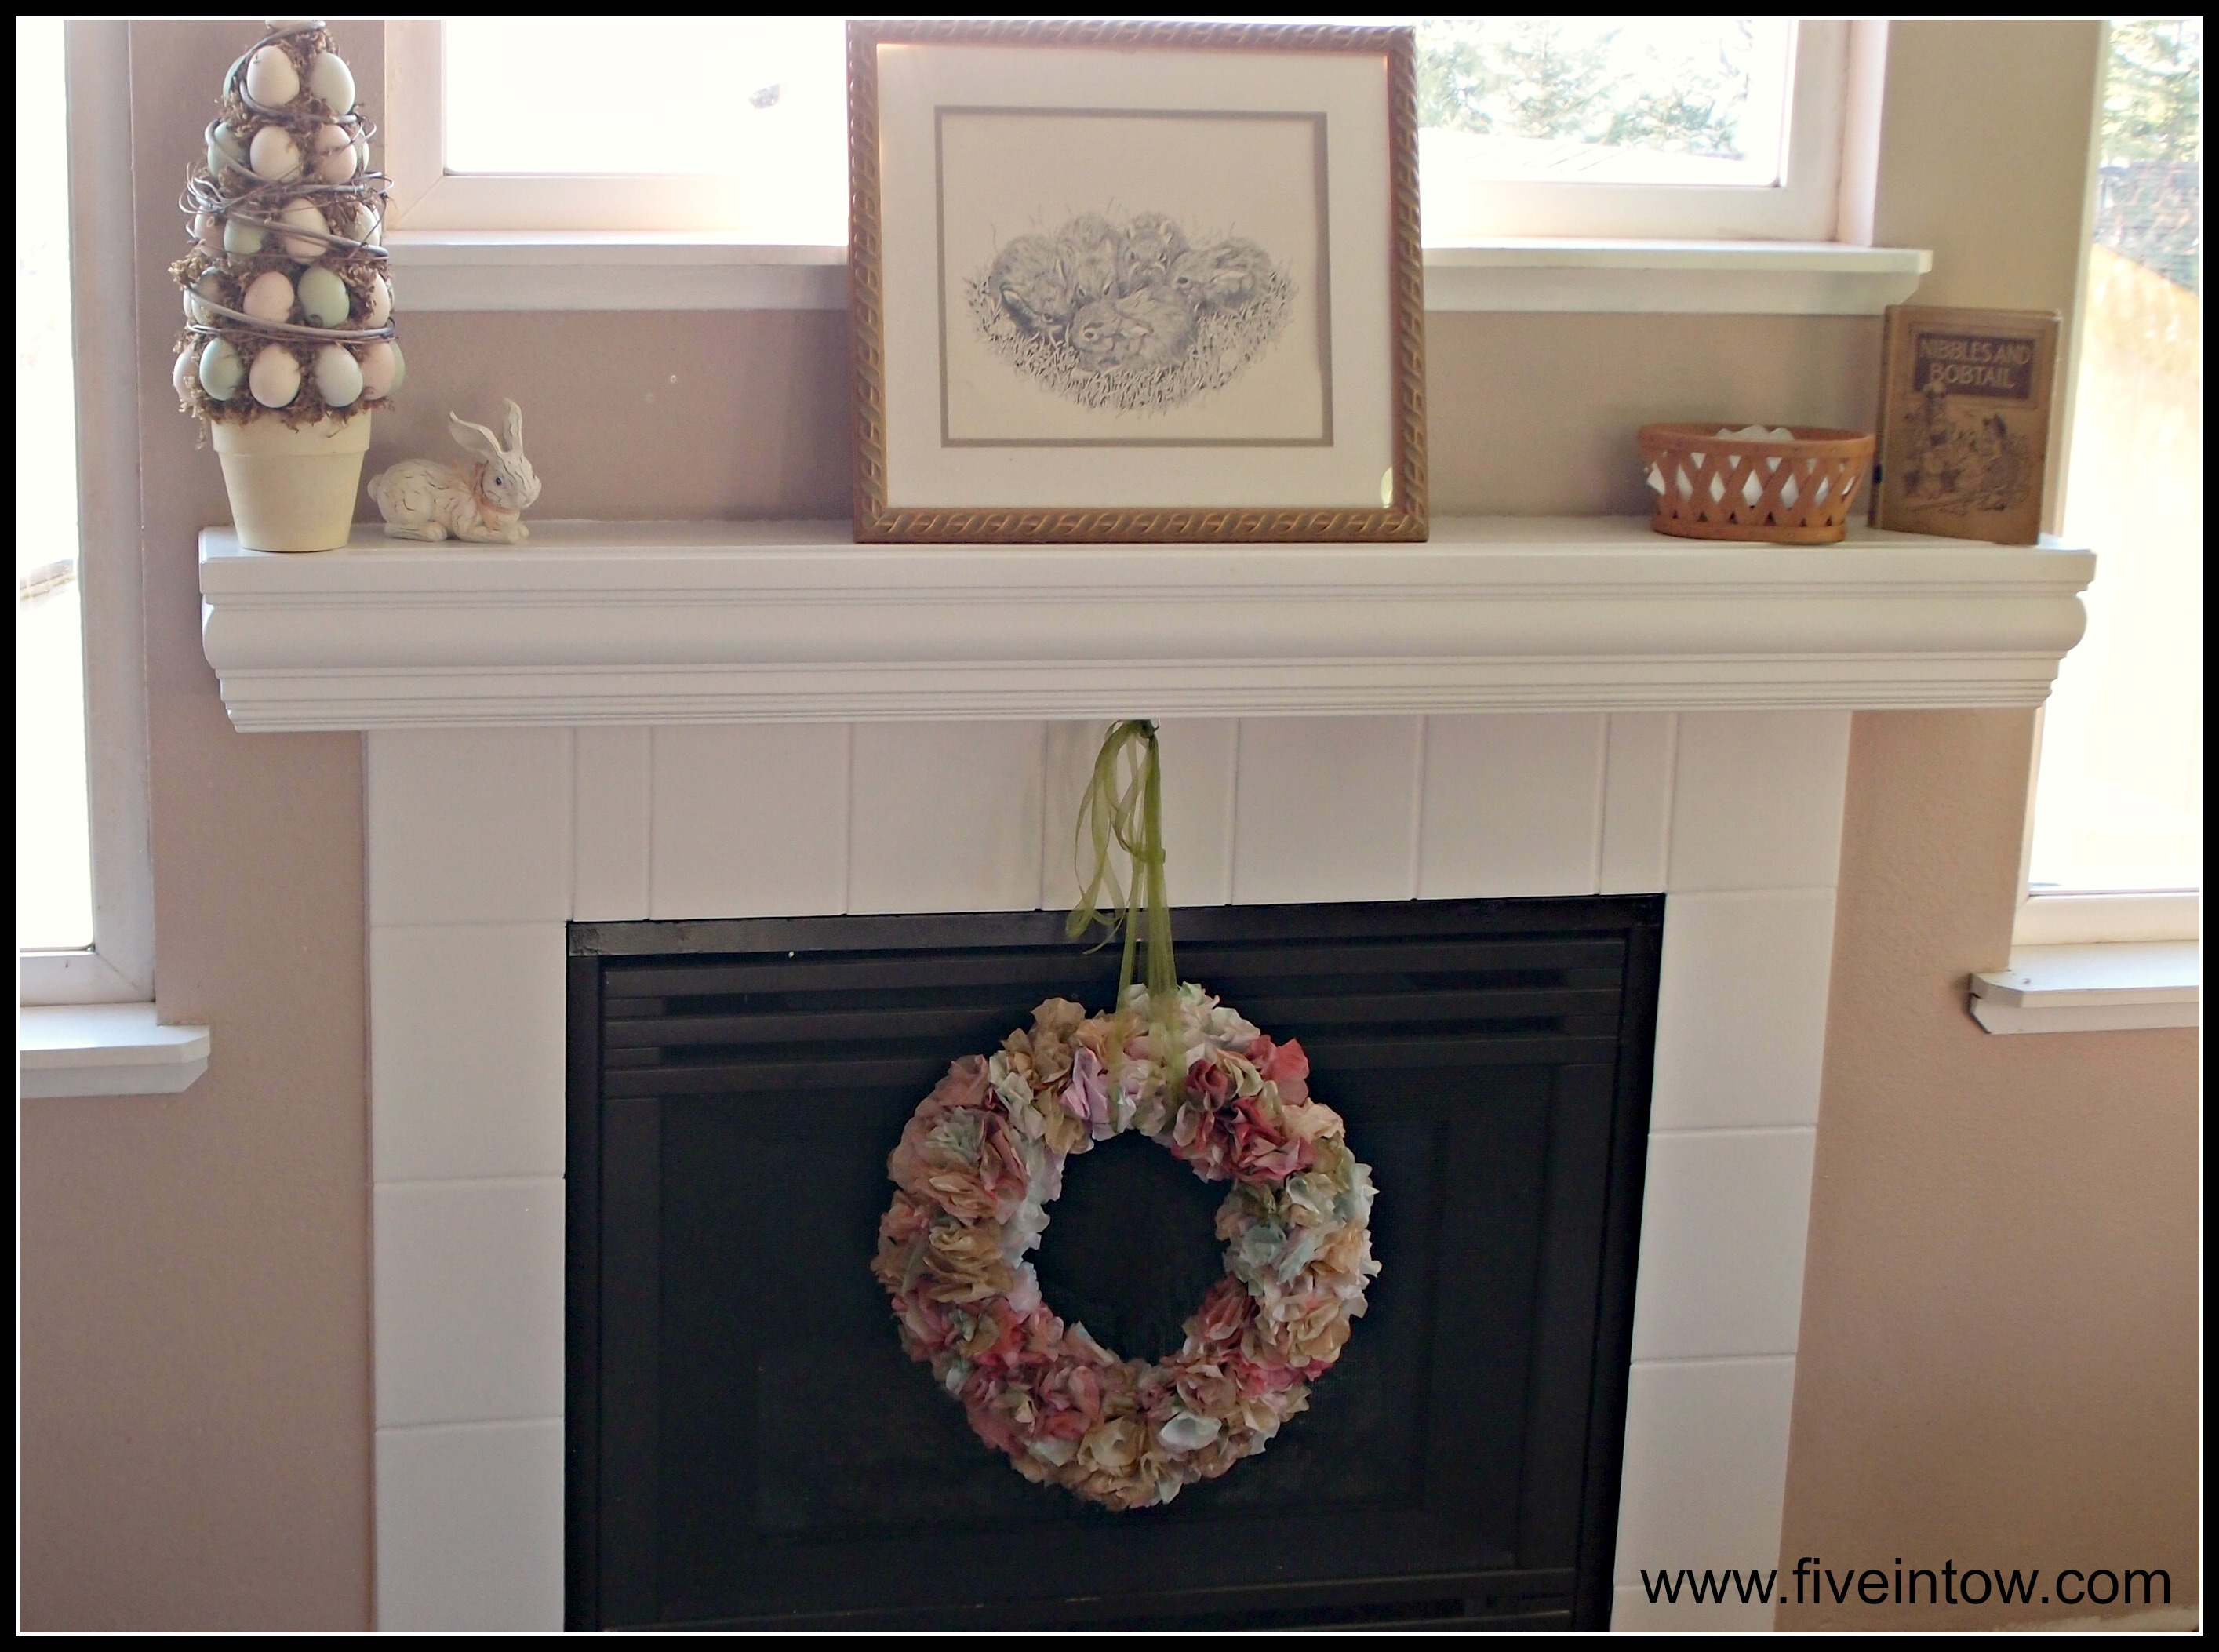 Heat Resistant Paint Fireplace Painting Tile And Other Ways To Save An Ugly Fireplace Kristen